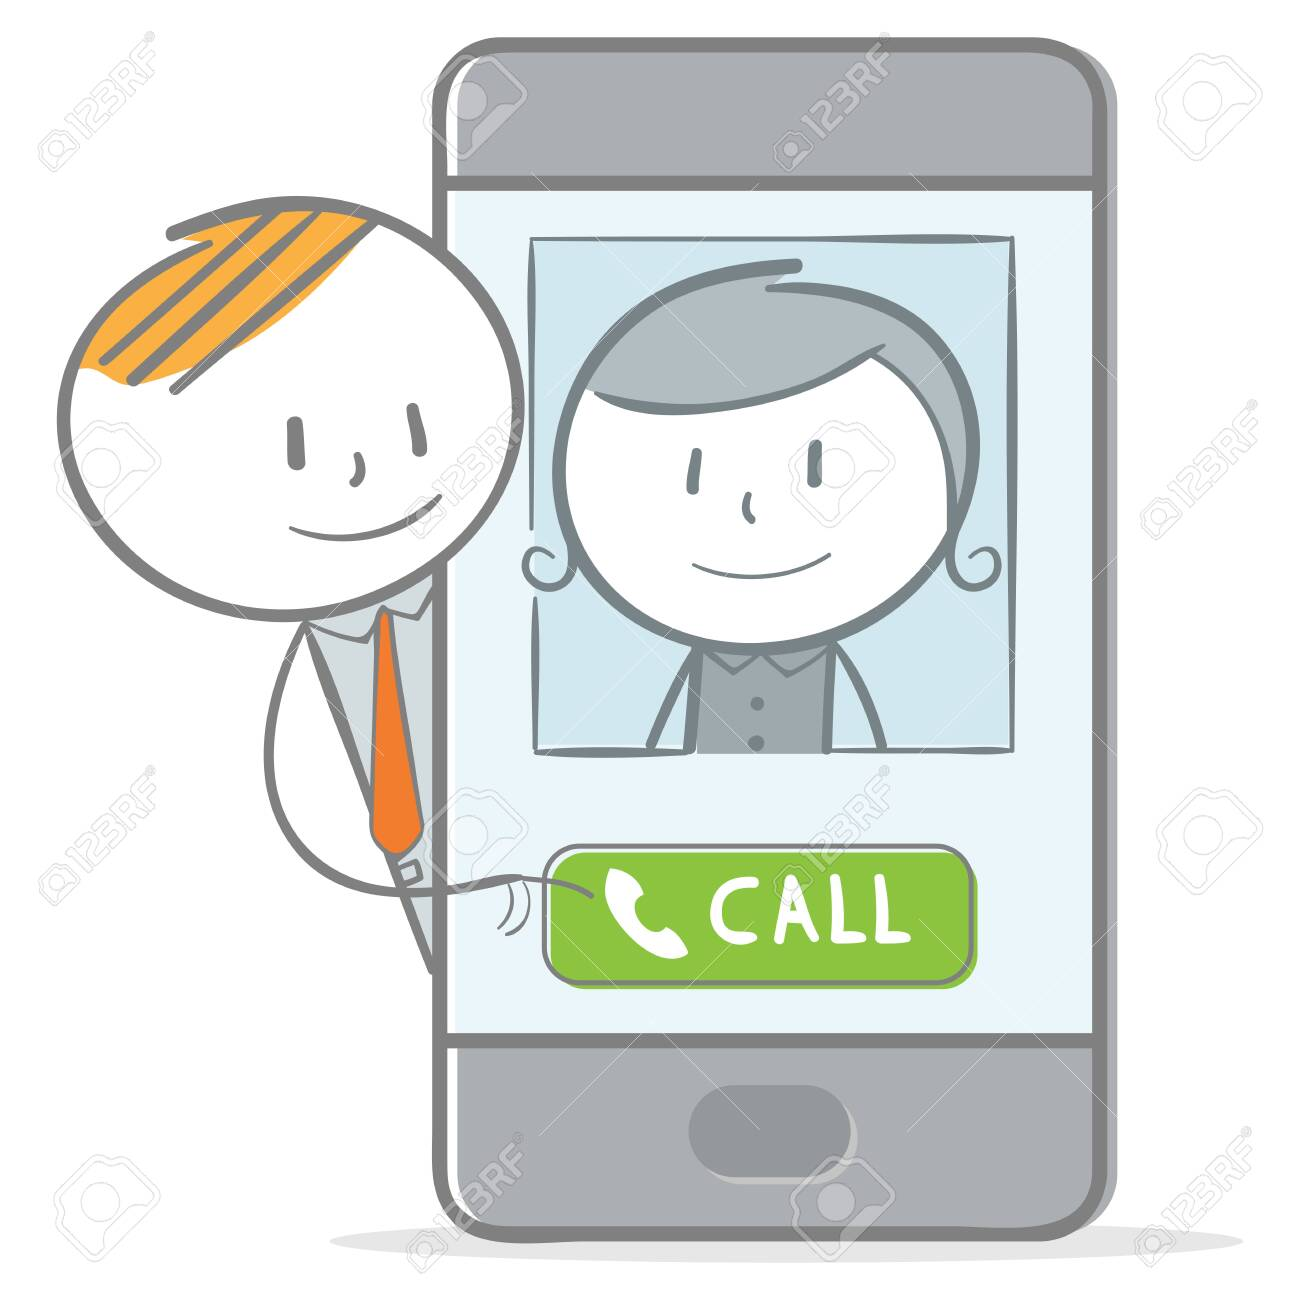 Doodle stick figure: Make a call with mobile phone - 134095182